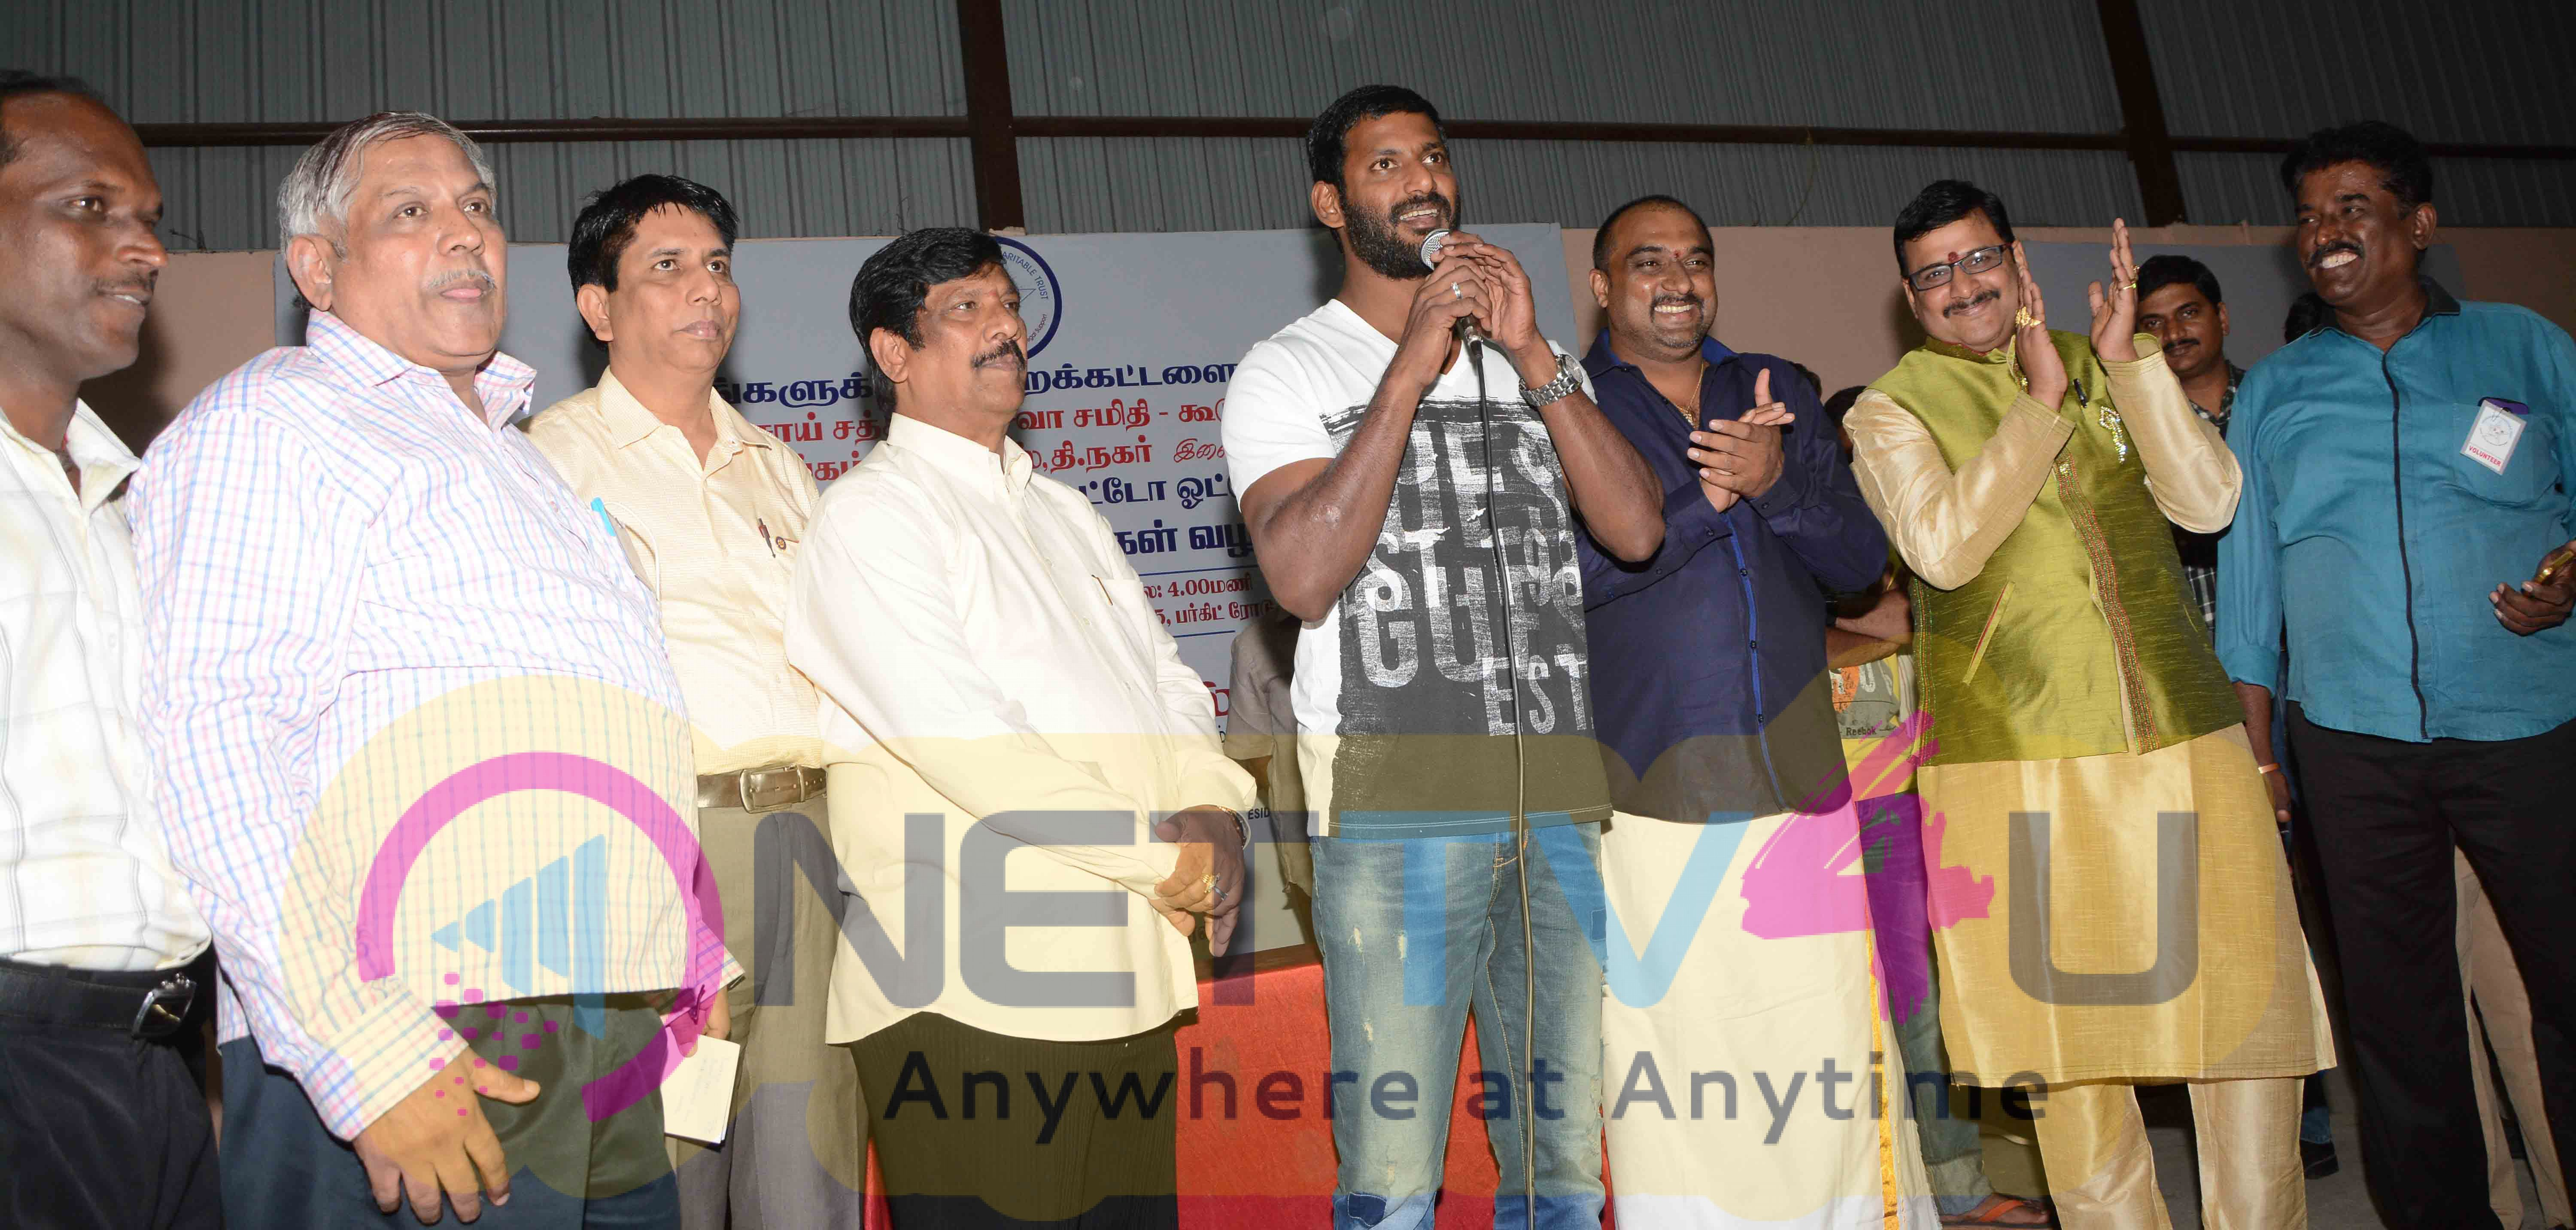 actor vishal celebrating new year with 2000 auto rickshaw drivers images 6